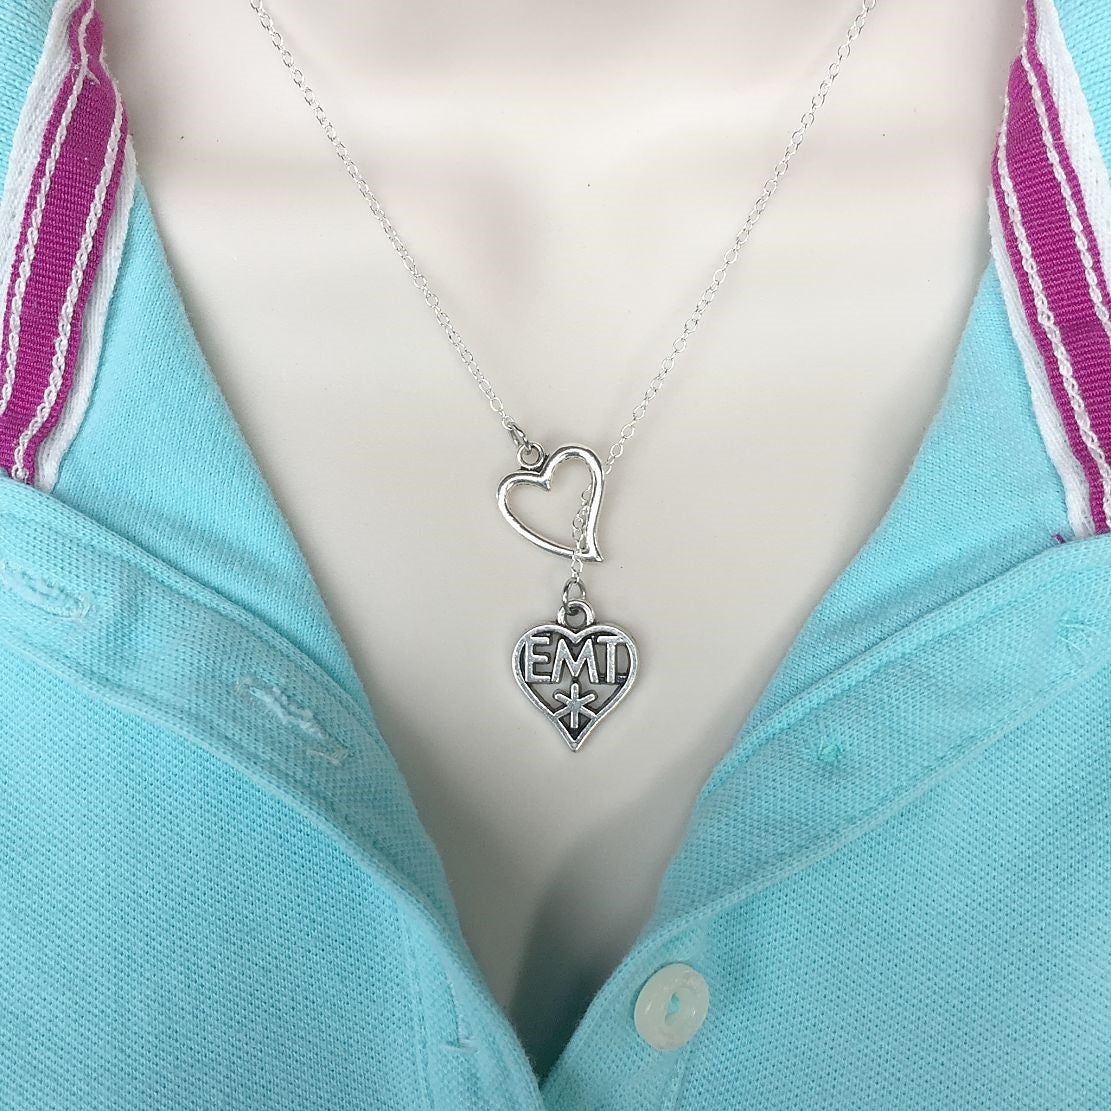 I Love Being EMT Handcrafted Necklace Lariat Y Style.